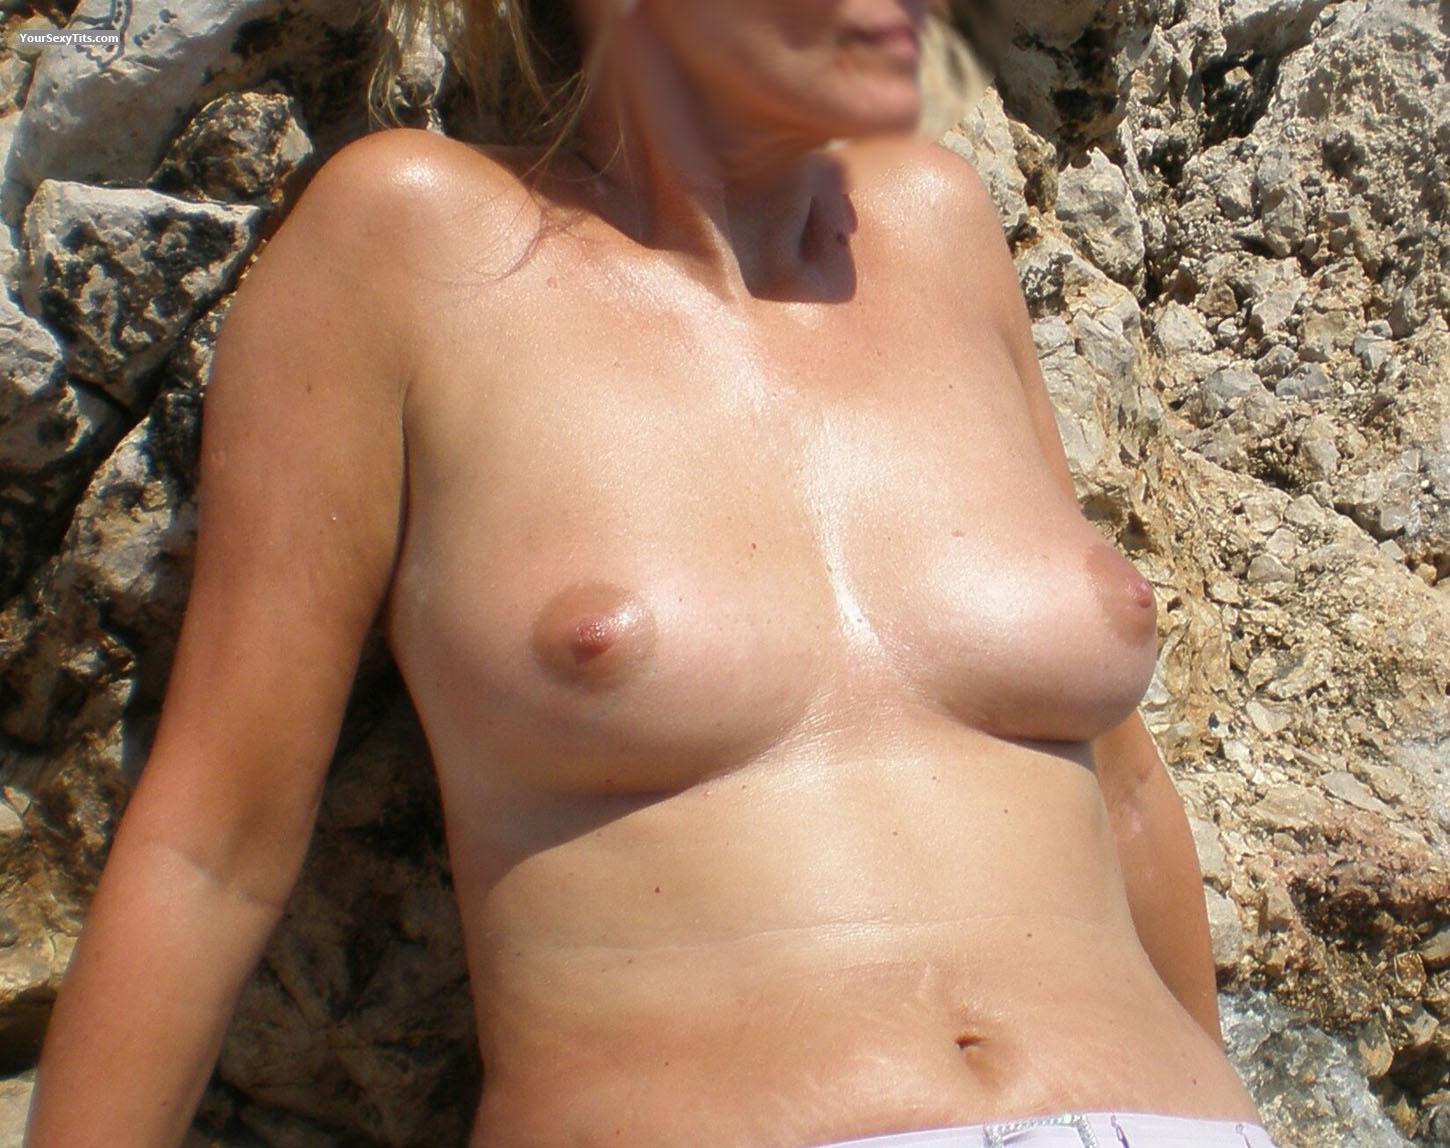 Tit Flash: Wife's Medium Tits - MILF UK from United Kingdom